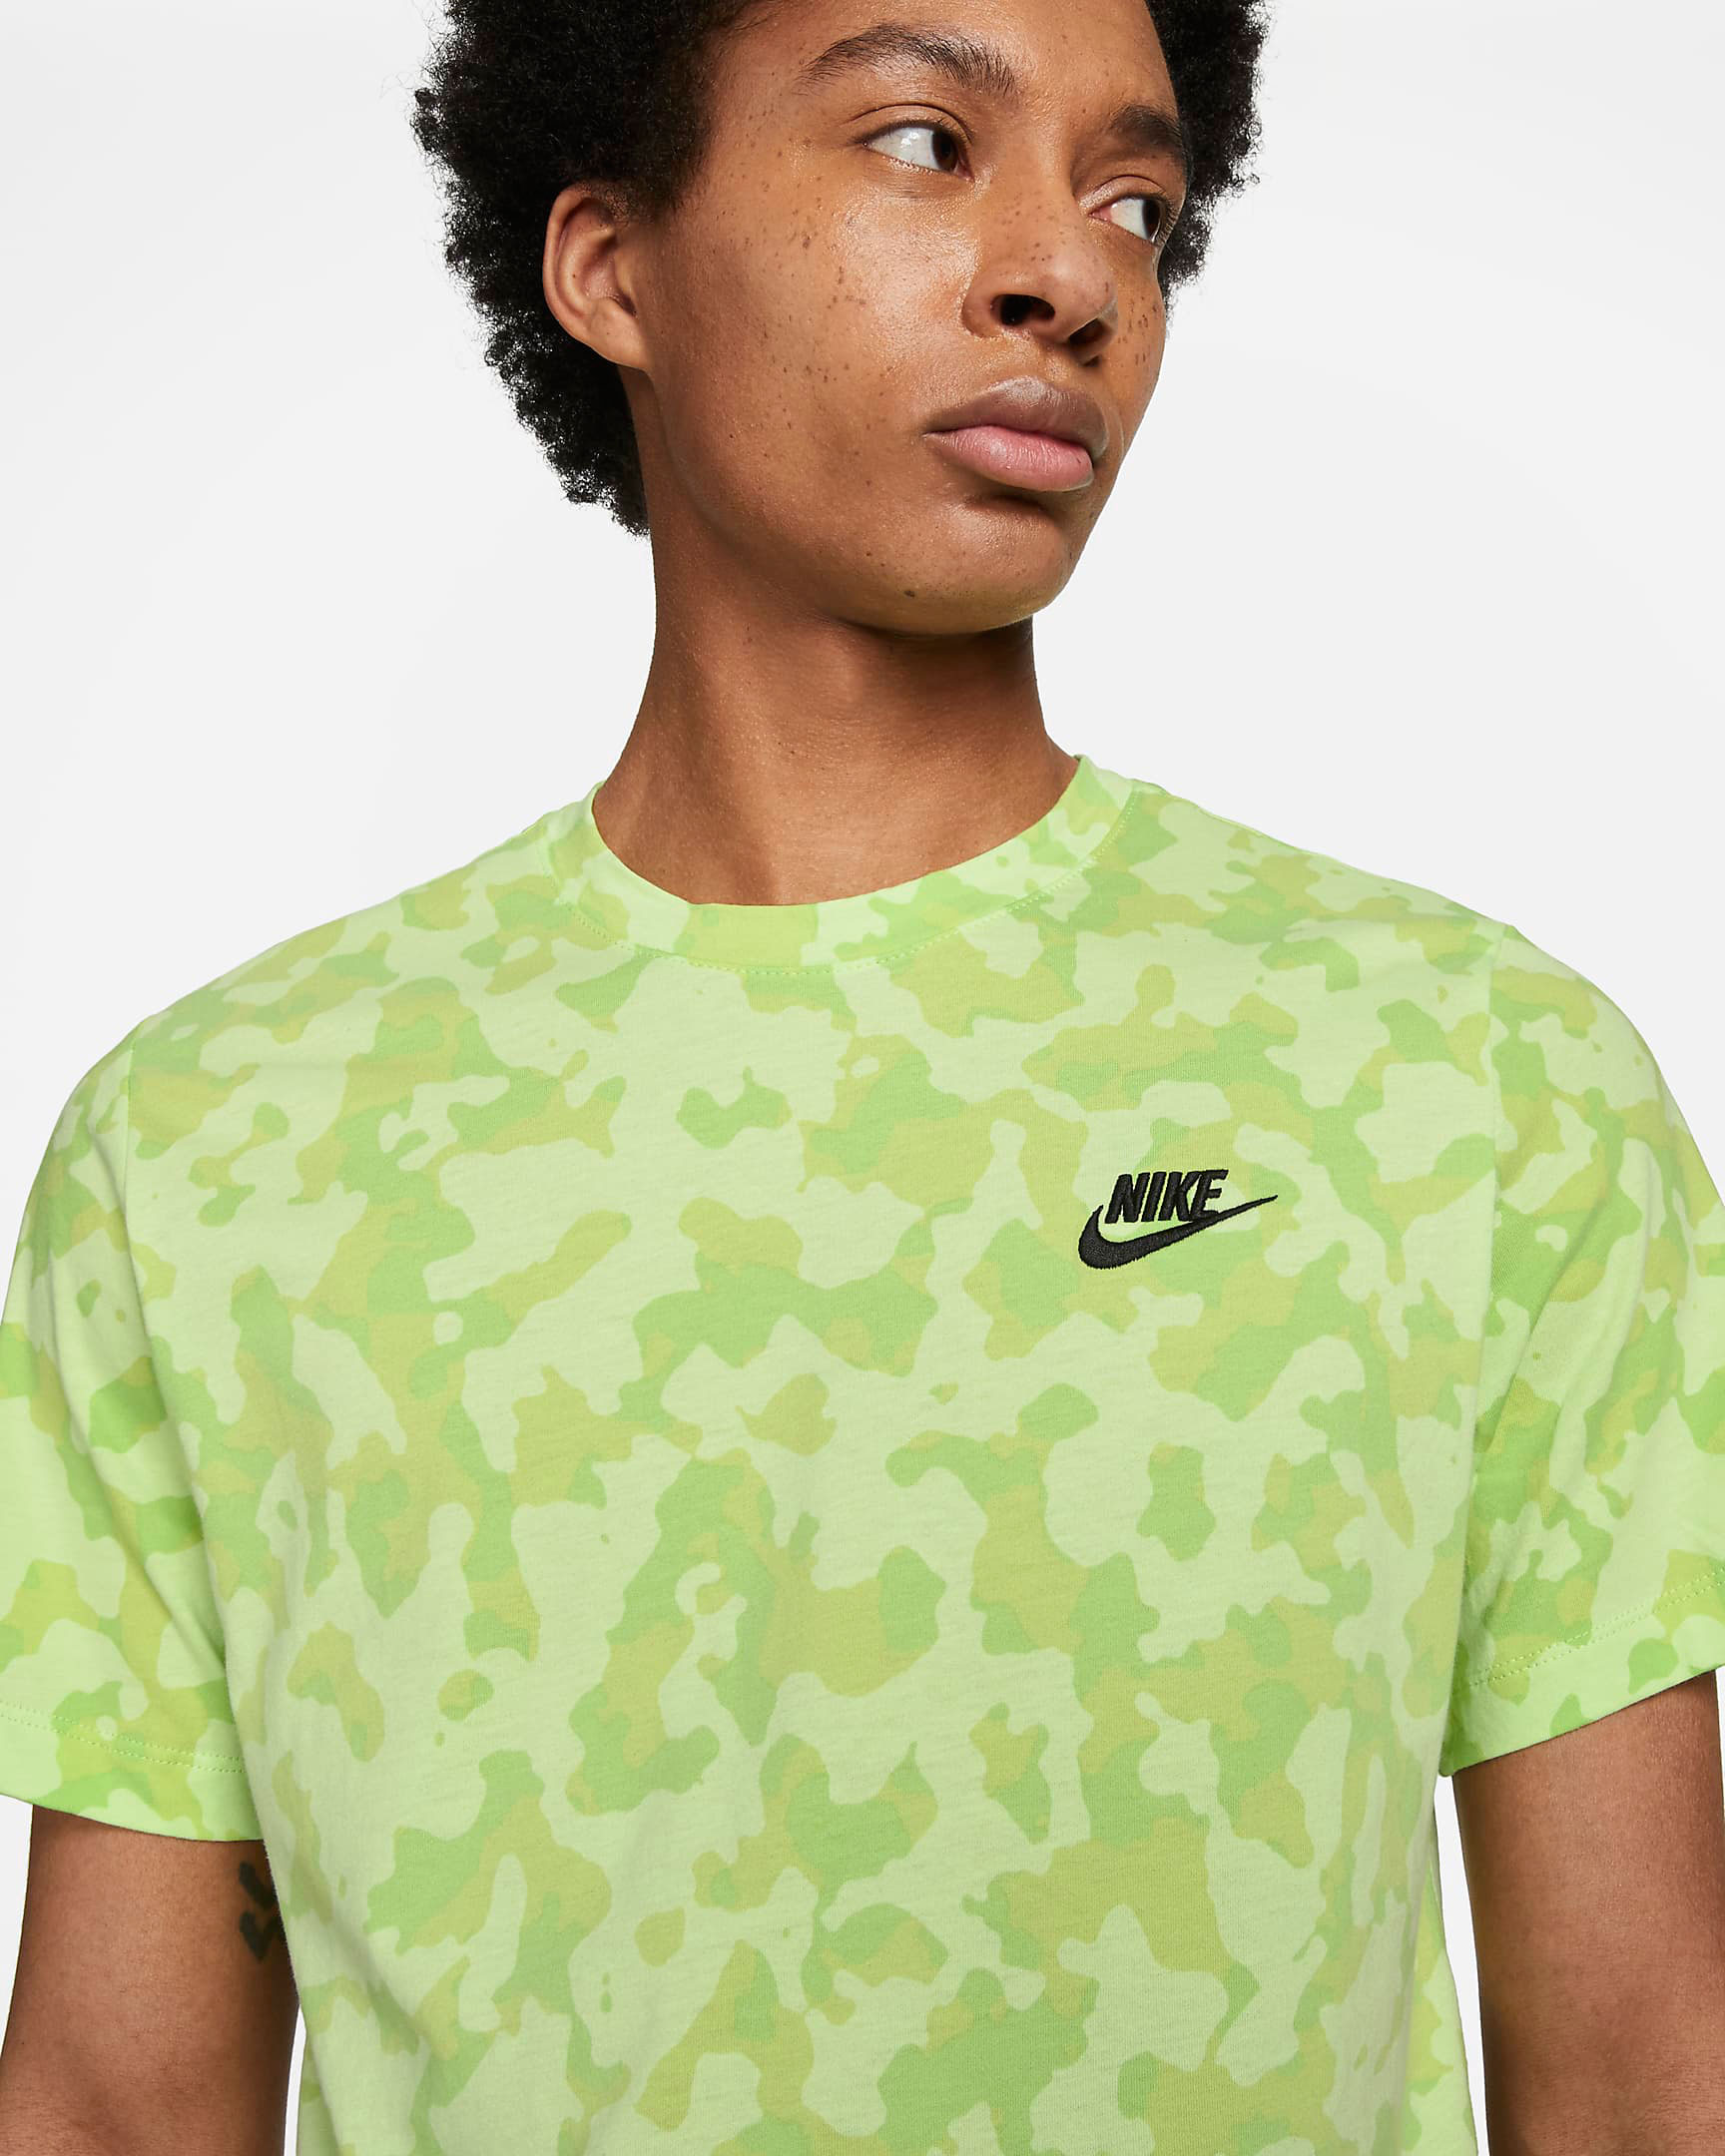 nike-light-liquid-lime-camo-shirt